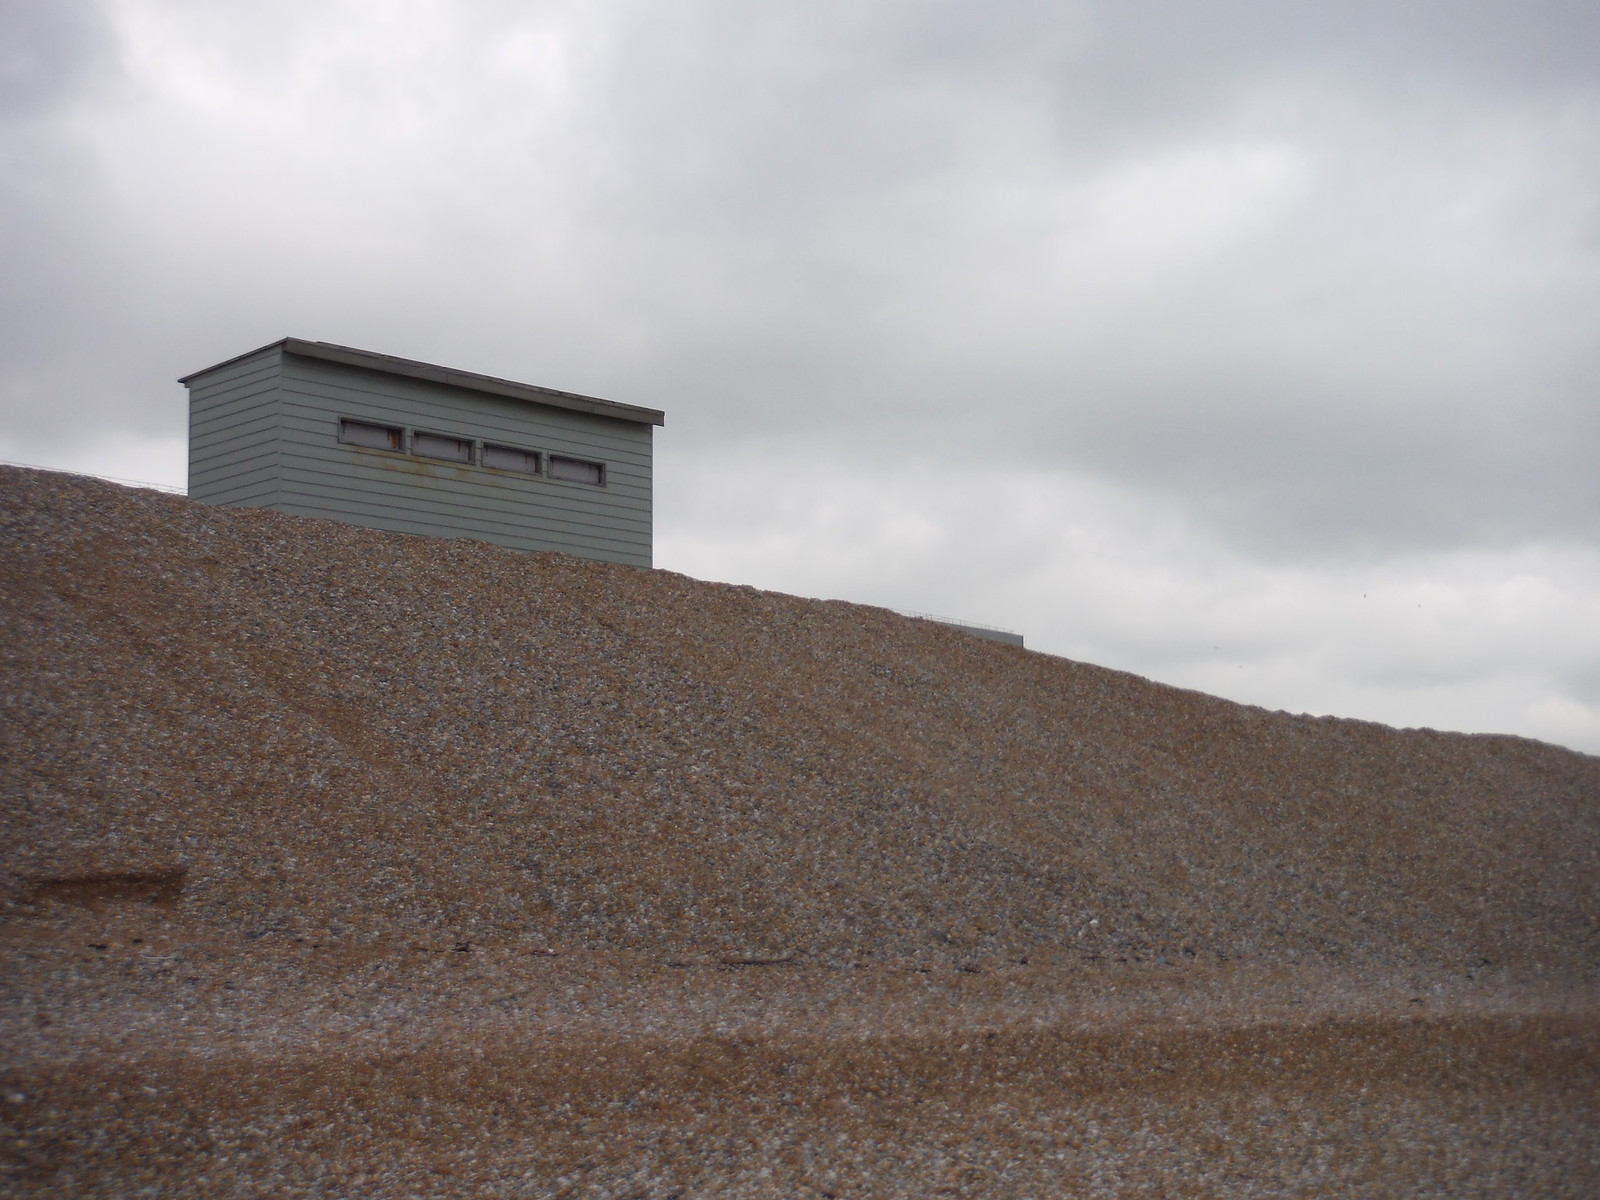 Dungeness Bird Hide on Tsunami Defence Shingle Wall SWC 154 - Rye to Dungeness and Lydd-on-Sea or Lydd or Circular